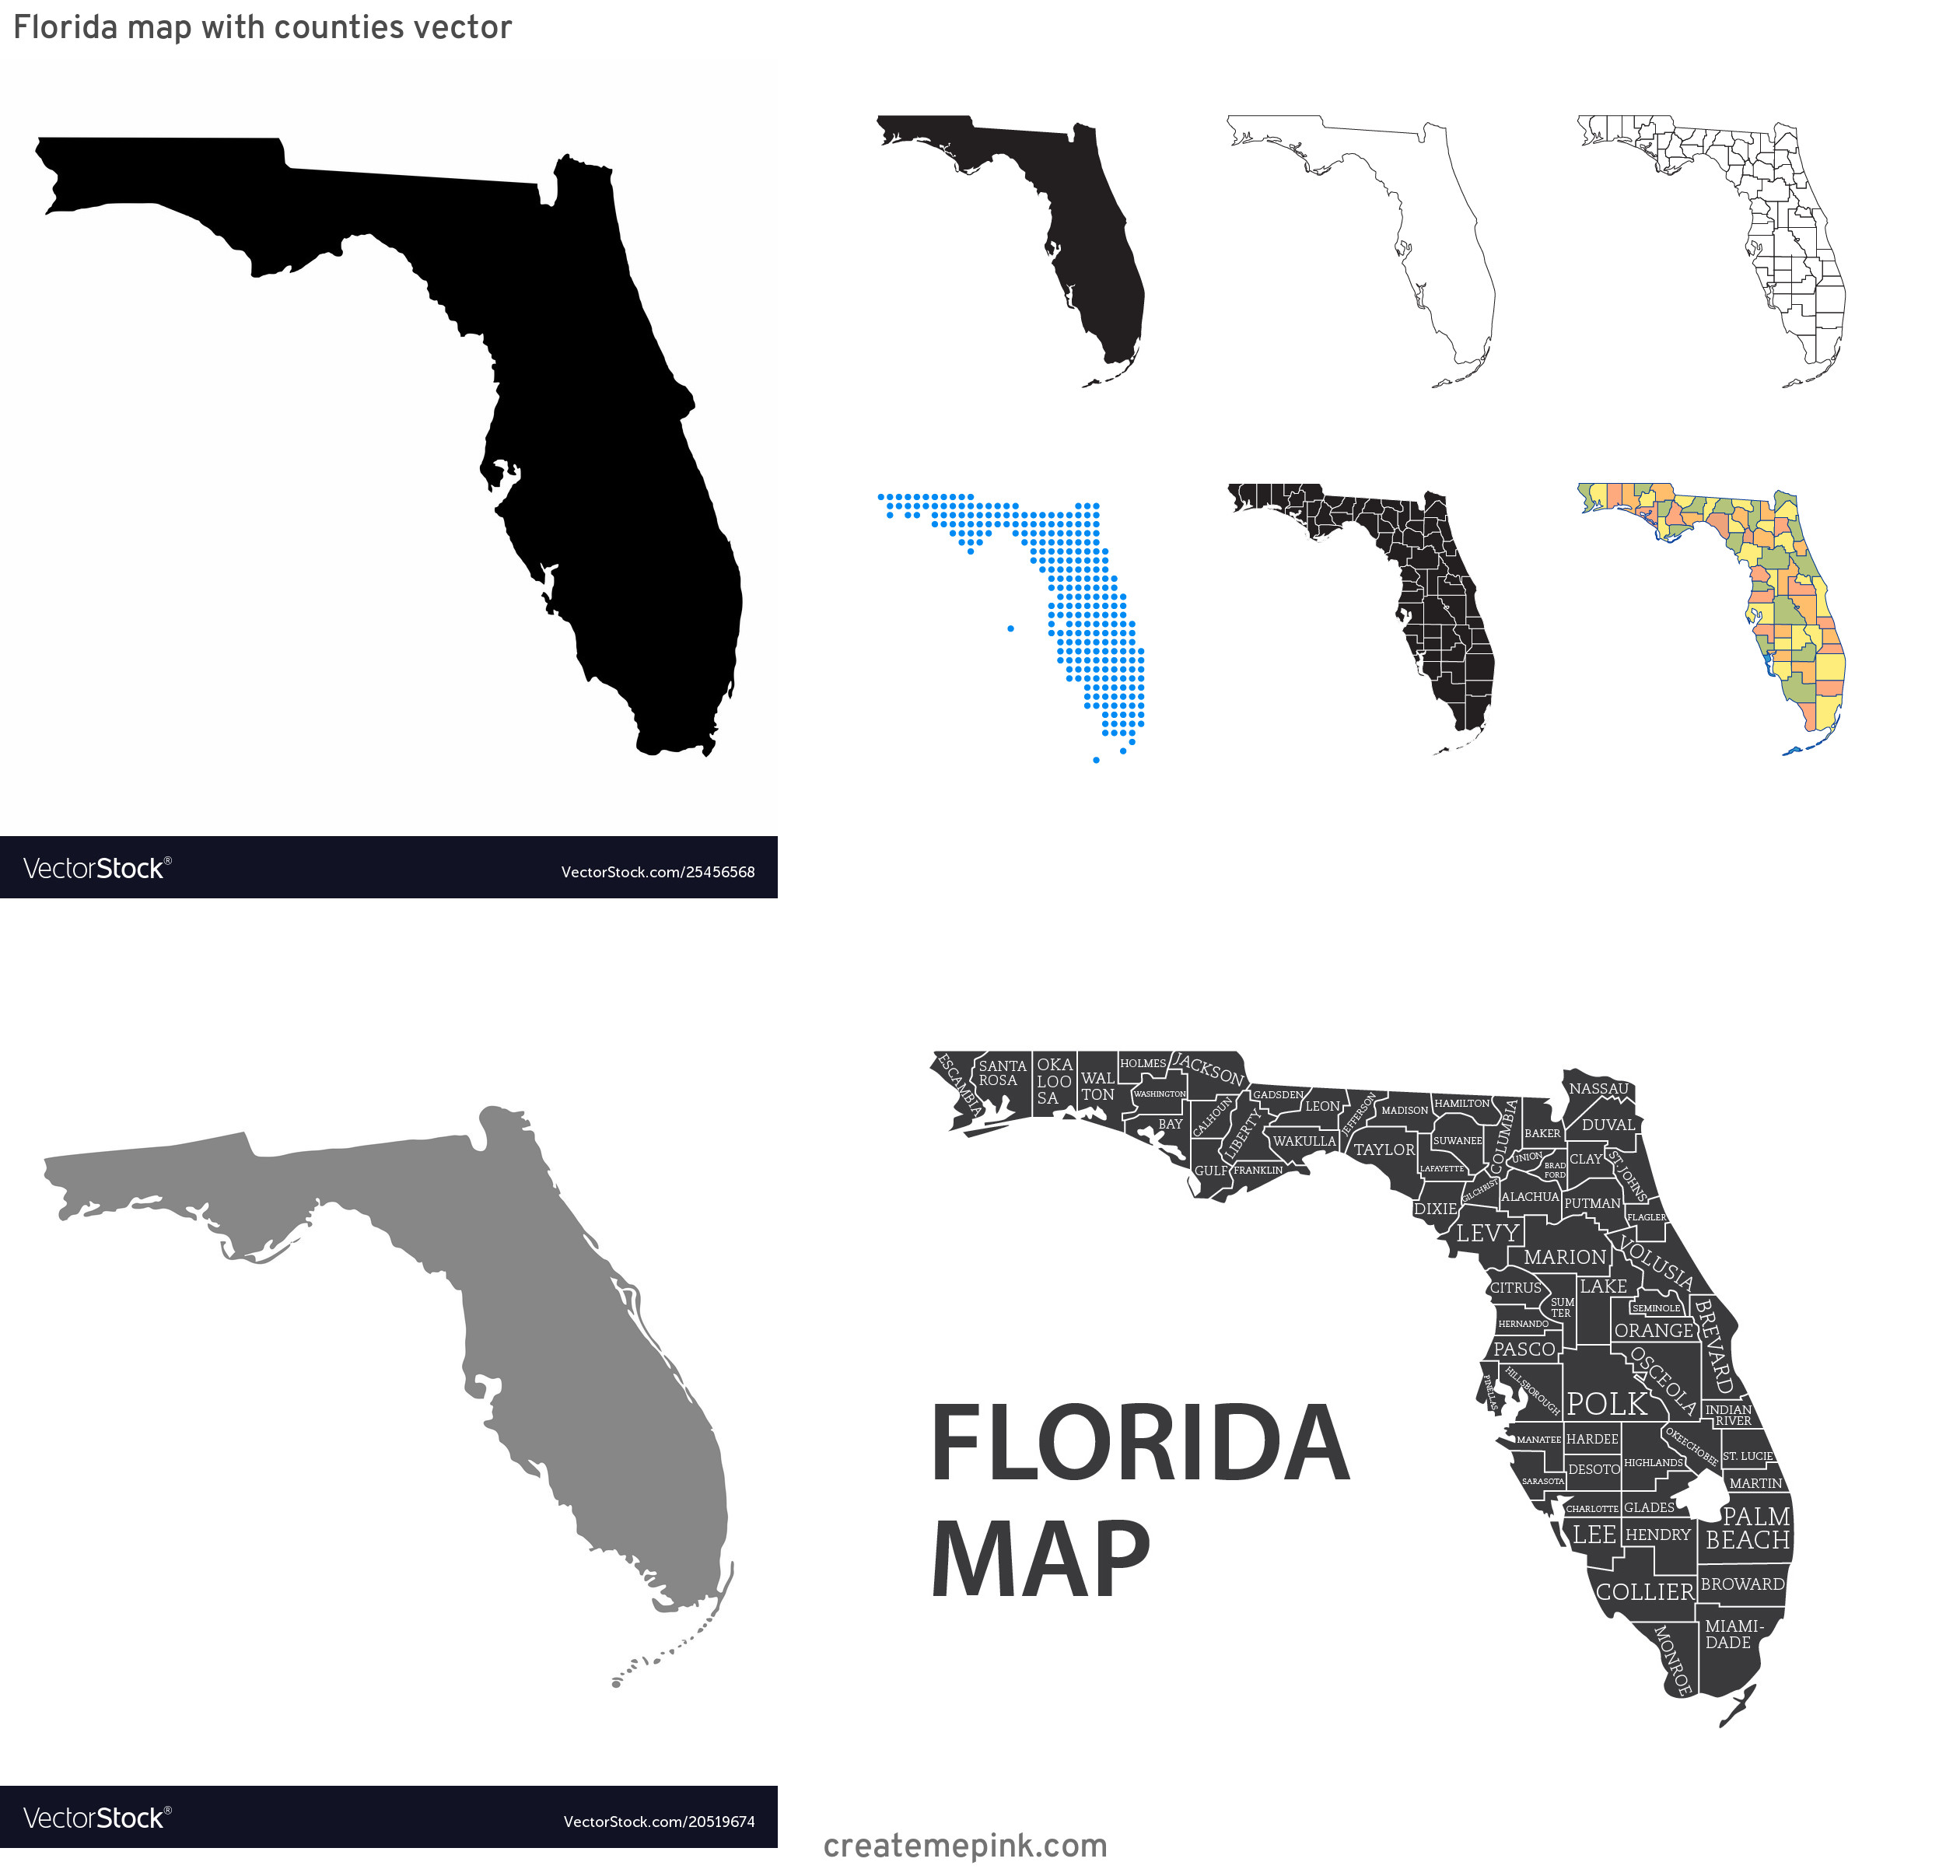 Florida Map Vector: Florida Map With Counties Vector